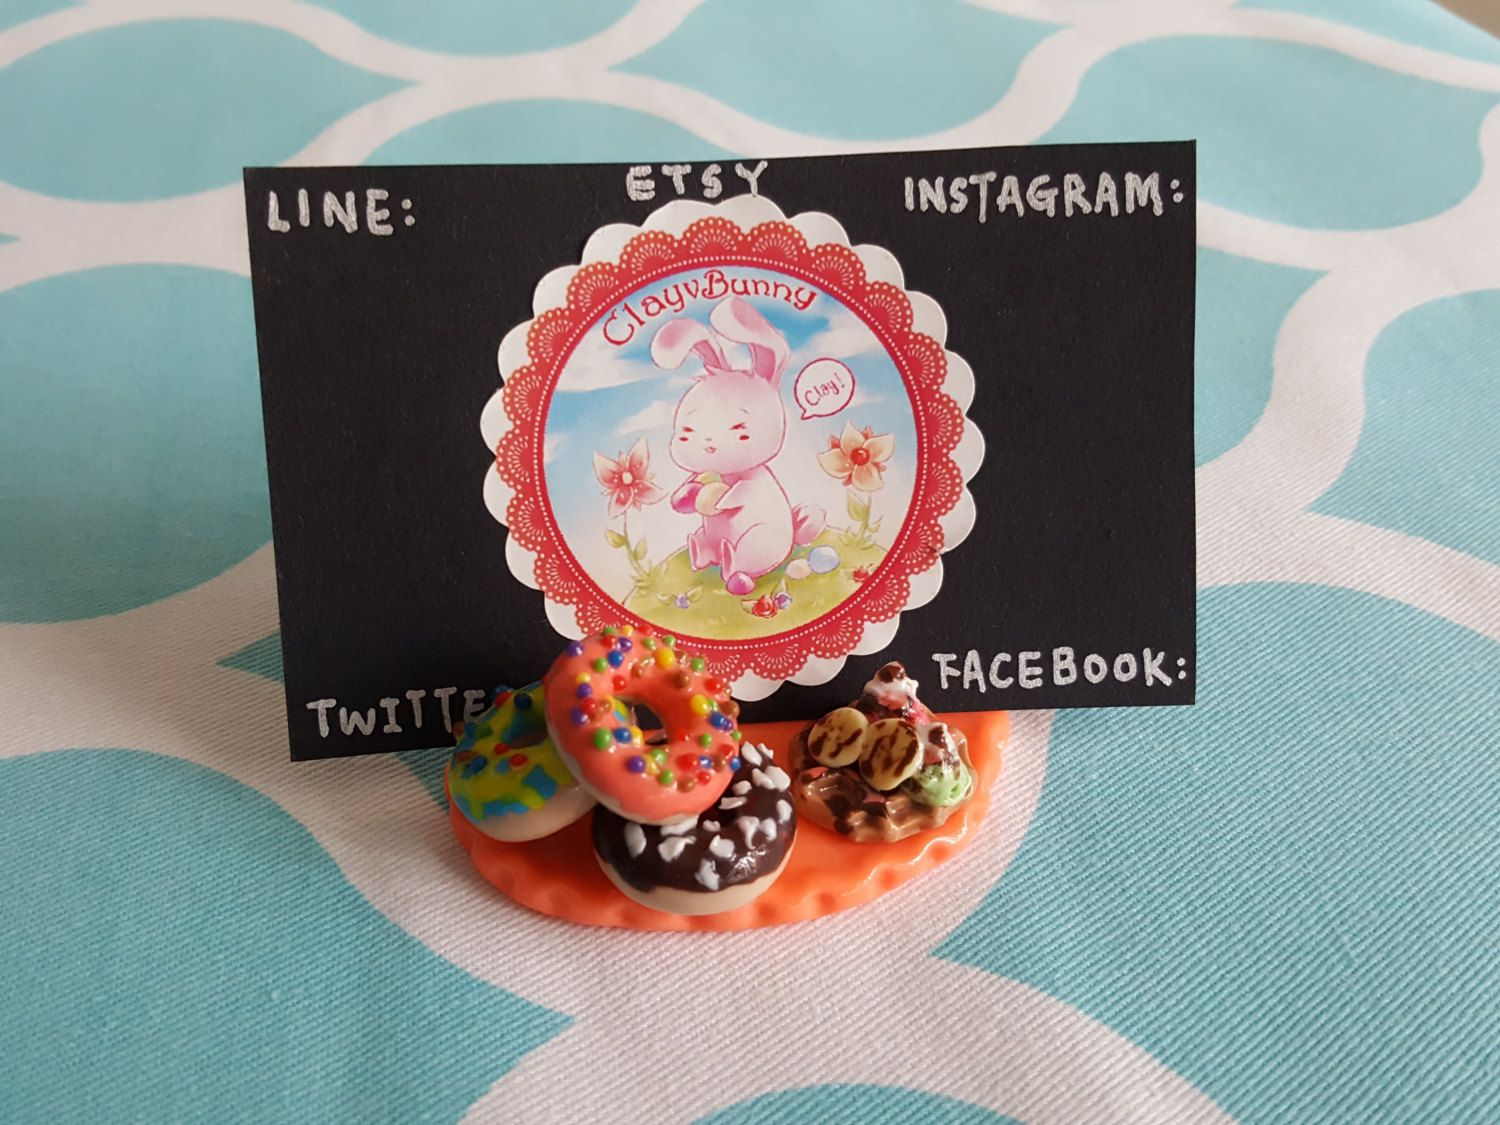 This is my handmade dessert name card holder clay business card this is my handmade dessert name card holder clay business card holder clay donuts magicingreecefo Gallery